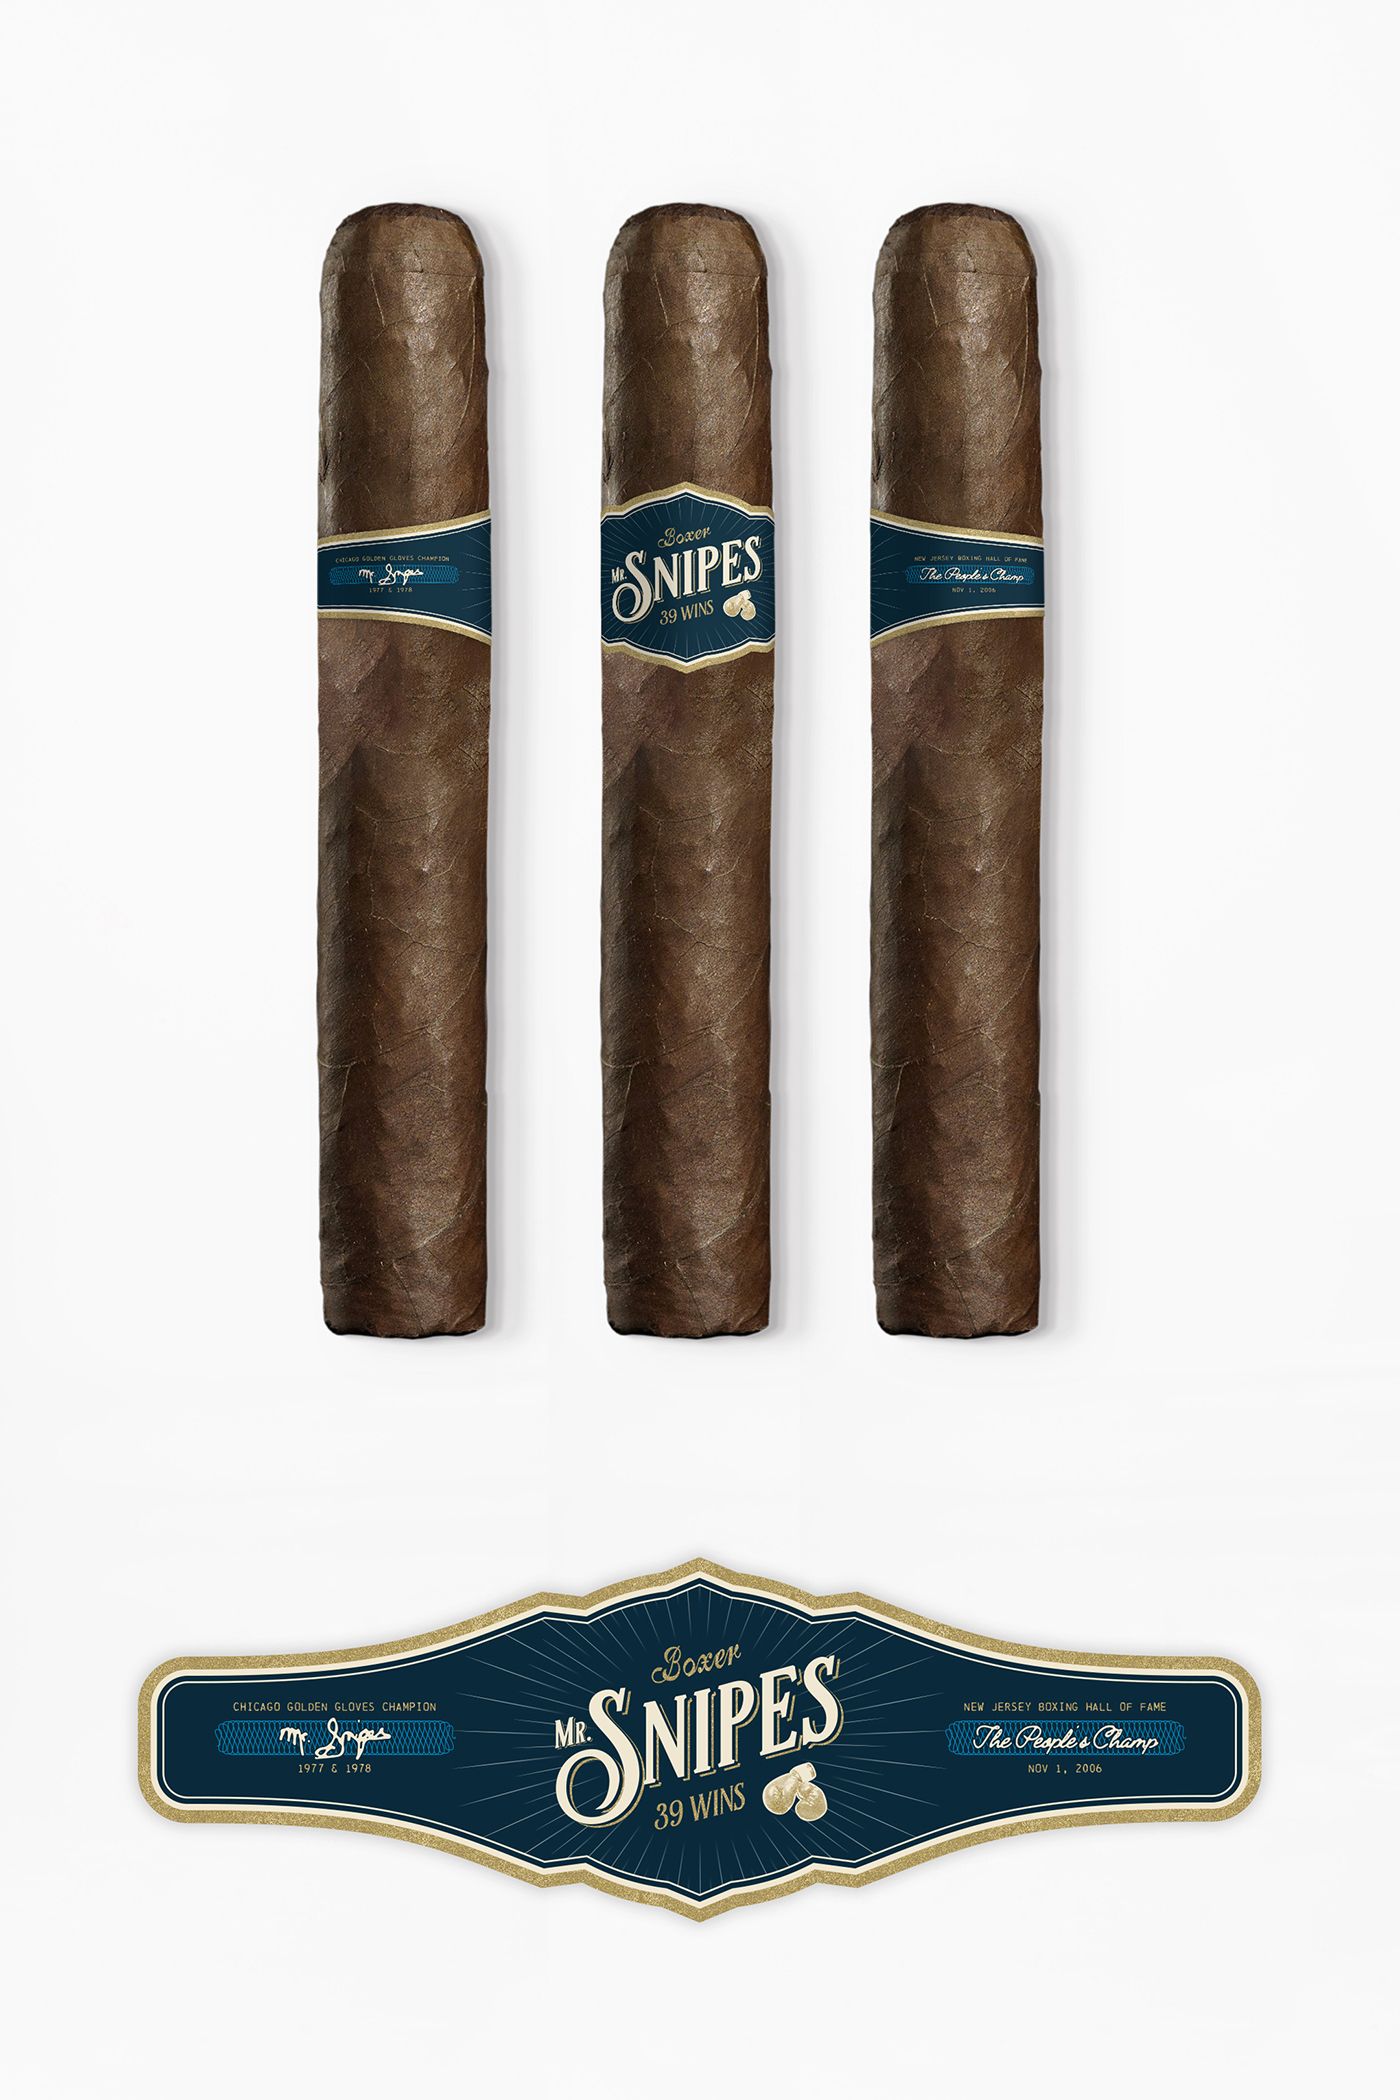 Mr. Snipes Cigars - Cigarband